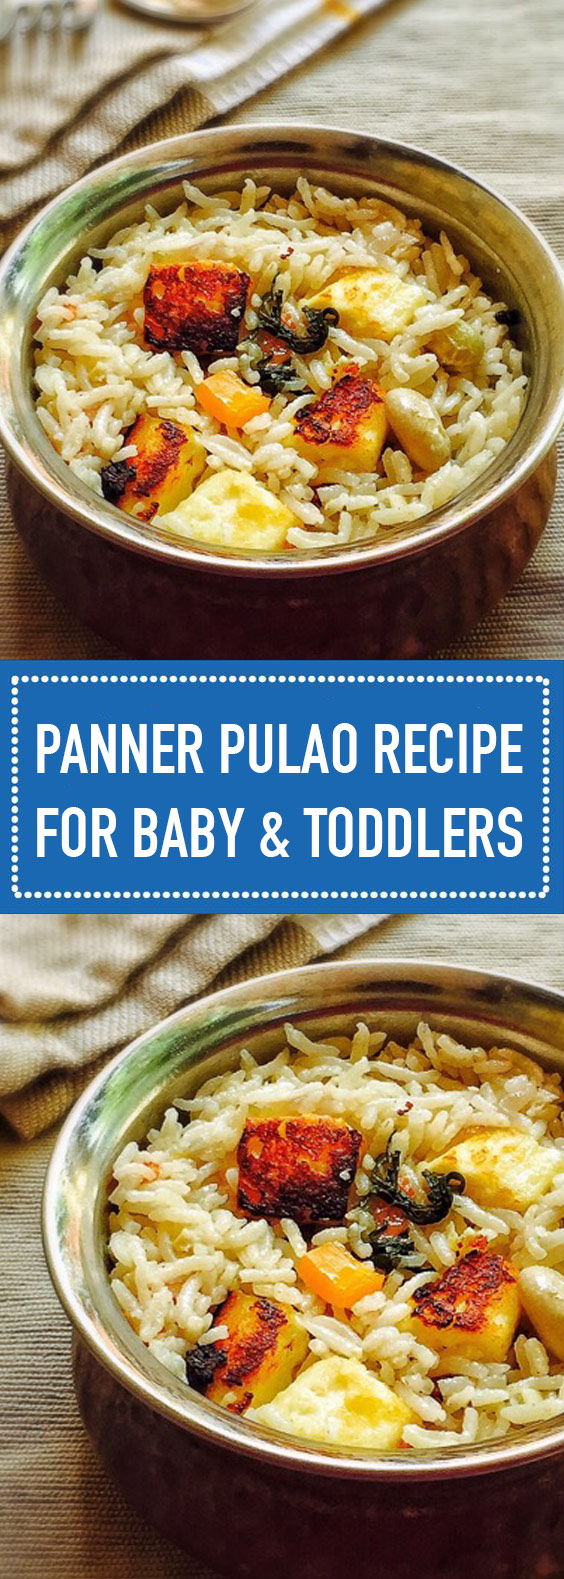 Paneer Pulao Recipe for Baby & Toddlers